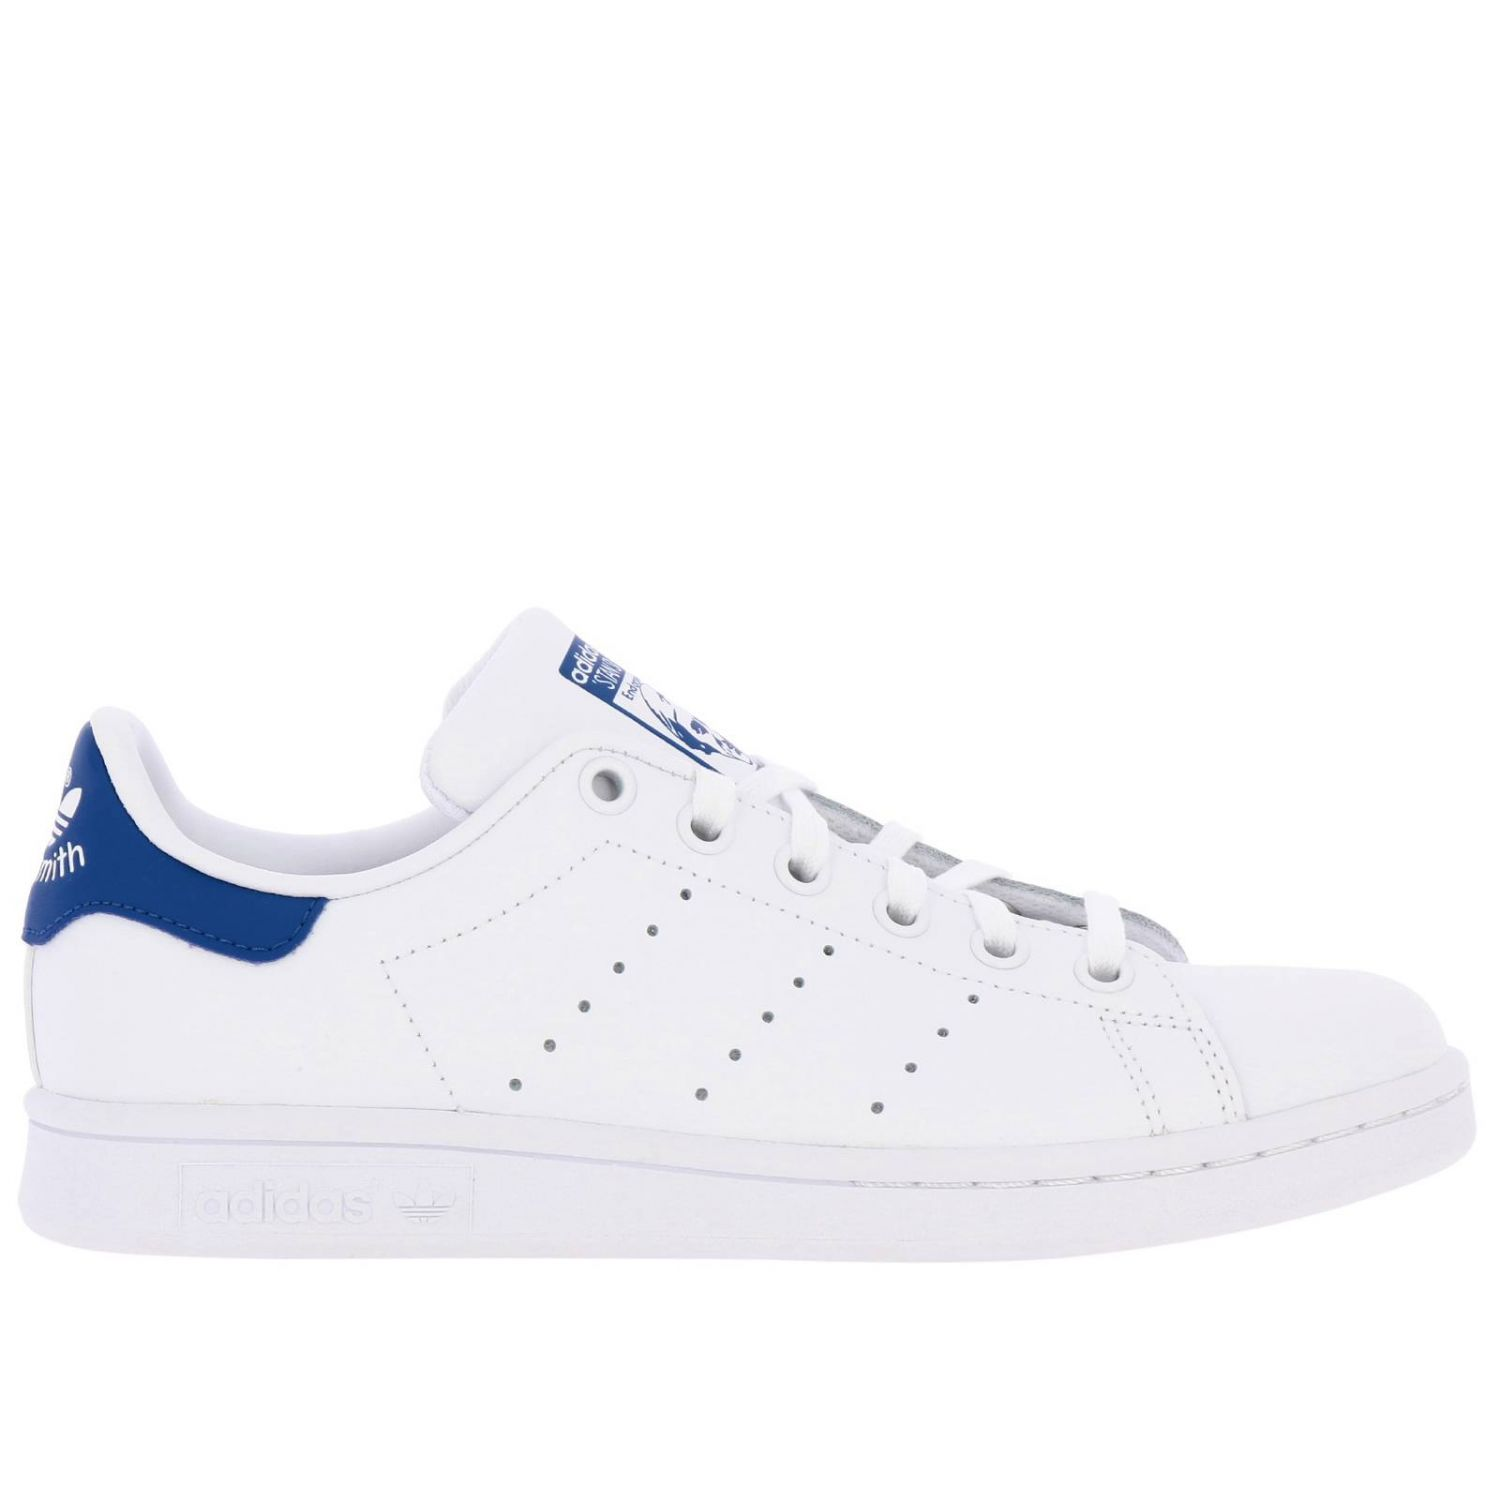 Zapatos Adidas Originals: Zapatillas Stan Smith J Adidas Originals de cuero con tacón en contraste blanco 1